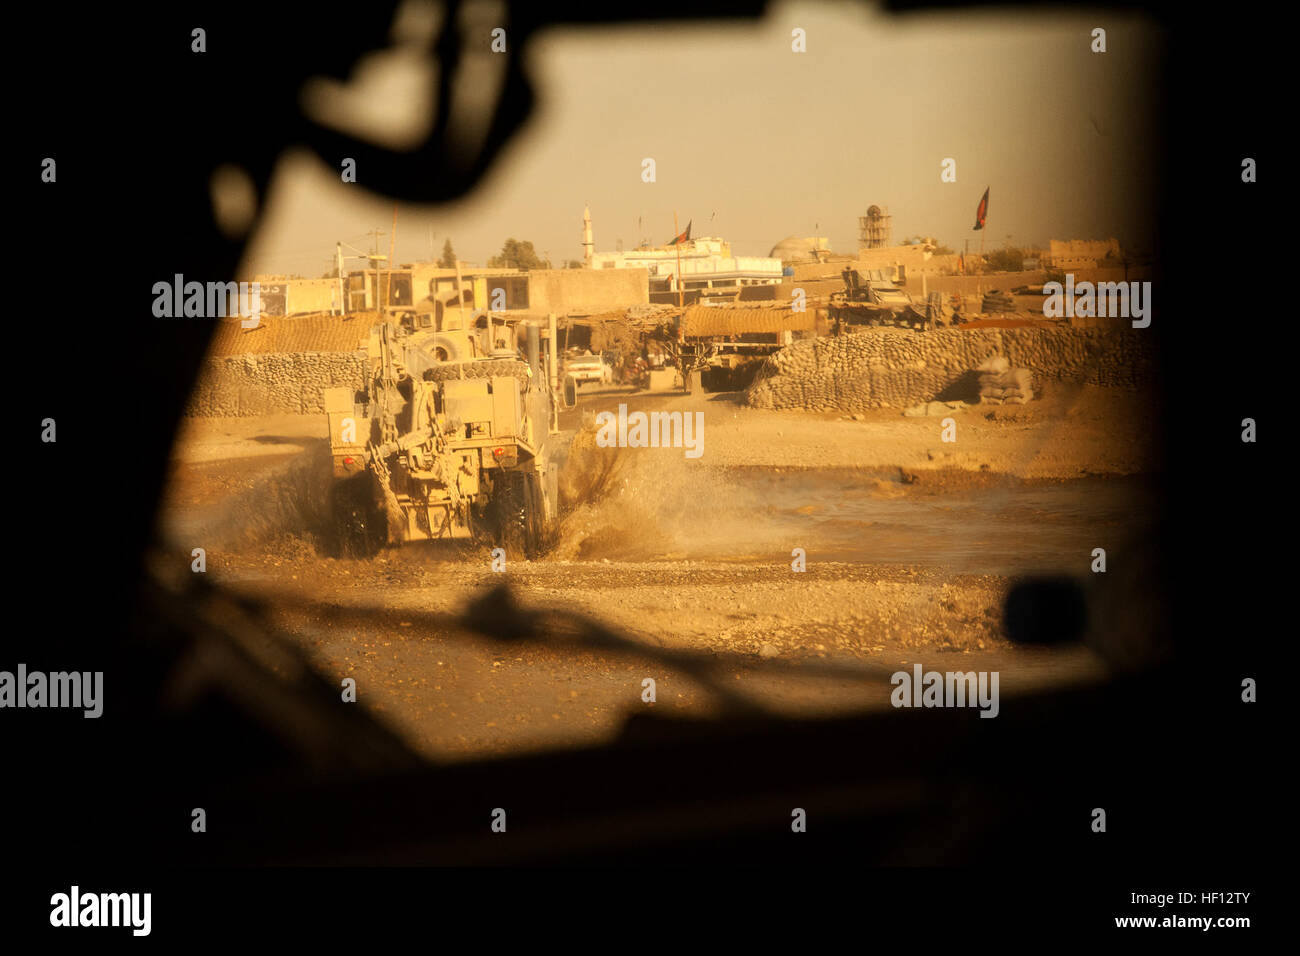 U.S. Marines assigned to Motor Transport Platoon, Fox Company, 2nd Battalion, 7th Marine Regiment (2/7), conduct a convoy mission in Helmand province, Afghanistan, Nov. 26, 2012. The Marines of 2/7 deployed to Afghanistan in support of Operation Enduring Freedom. (U.S. Marine Corps photo by Cpl. Alejandro Pena/Released) Motor-T Platoon Convoy 121126-M-YH552-495 Stock Photo